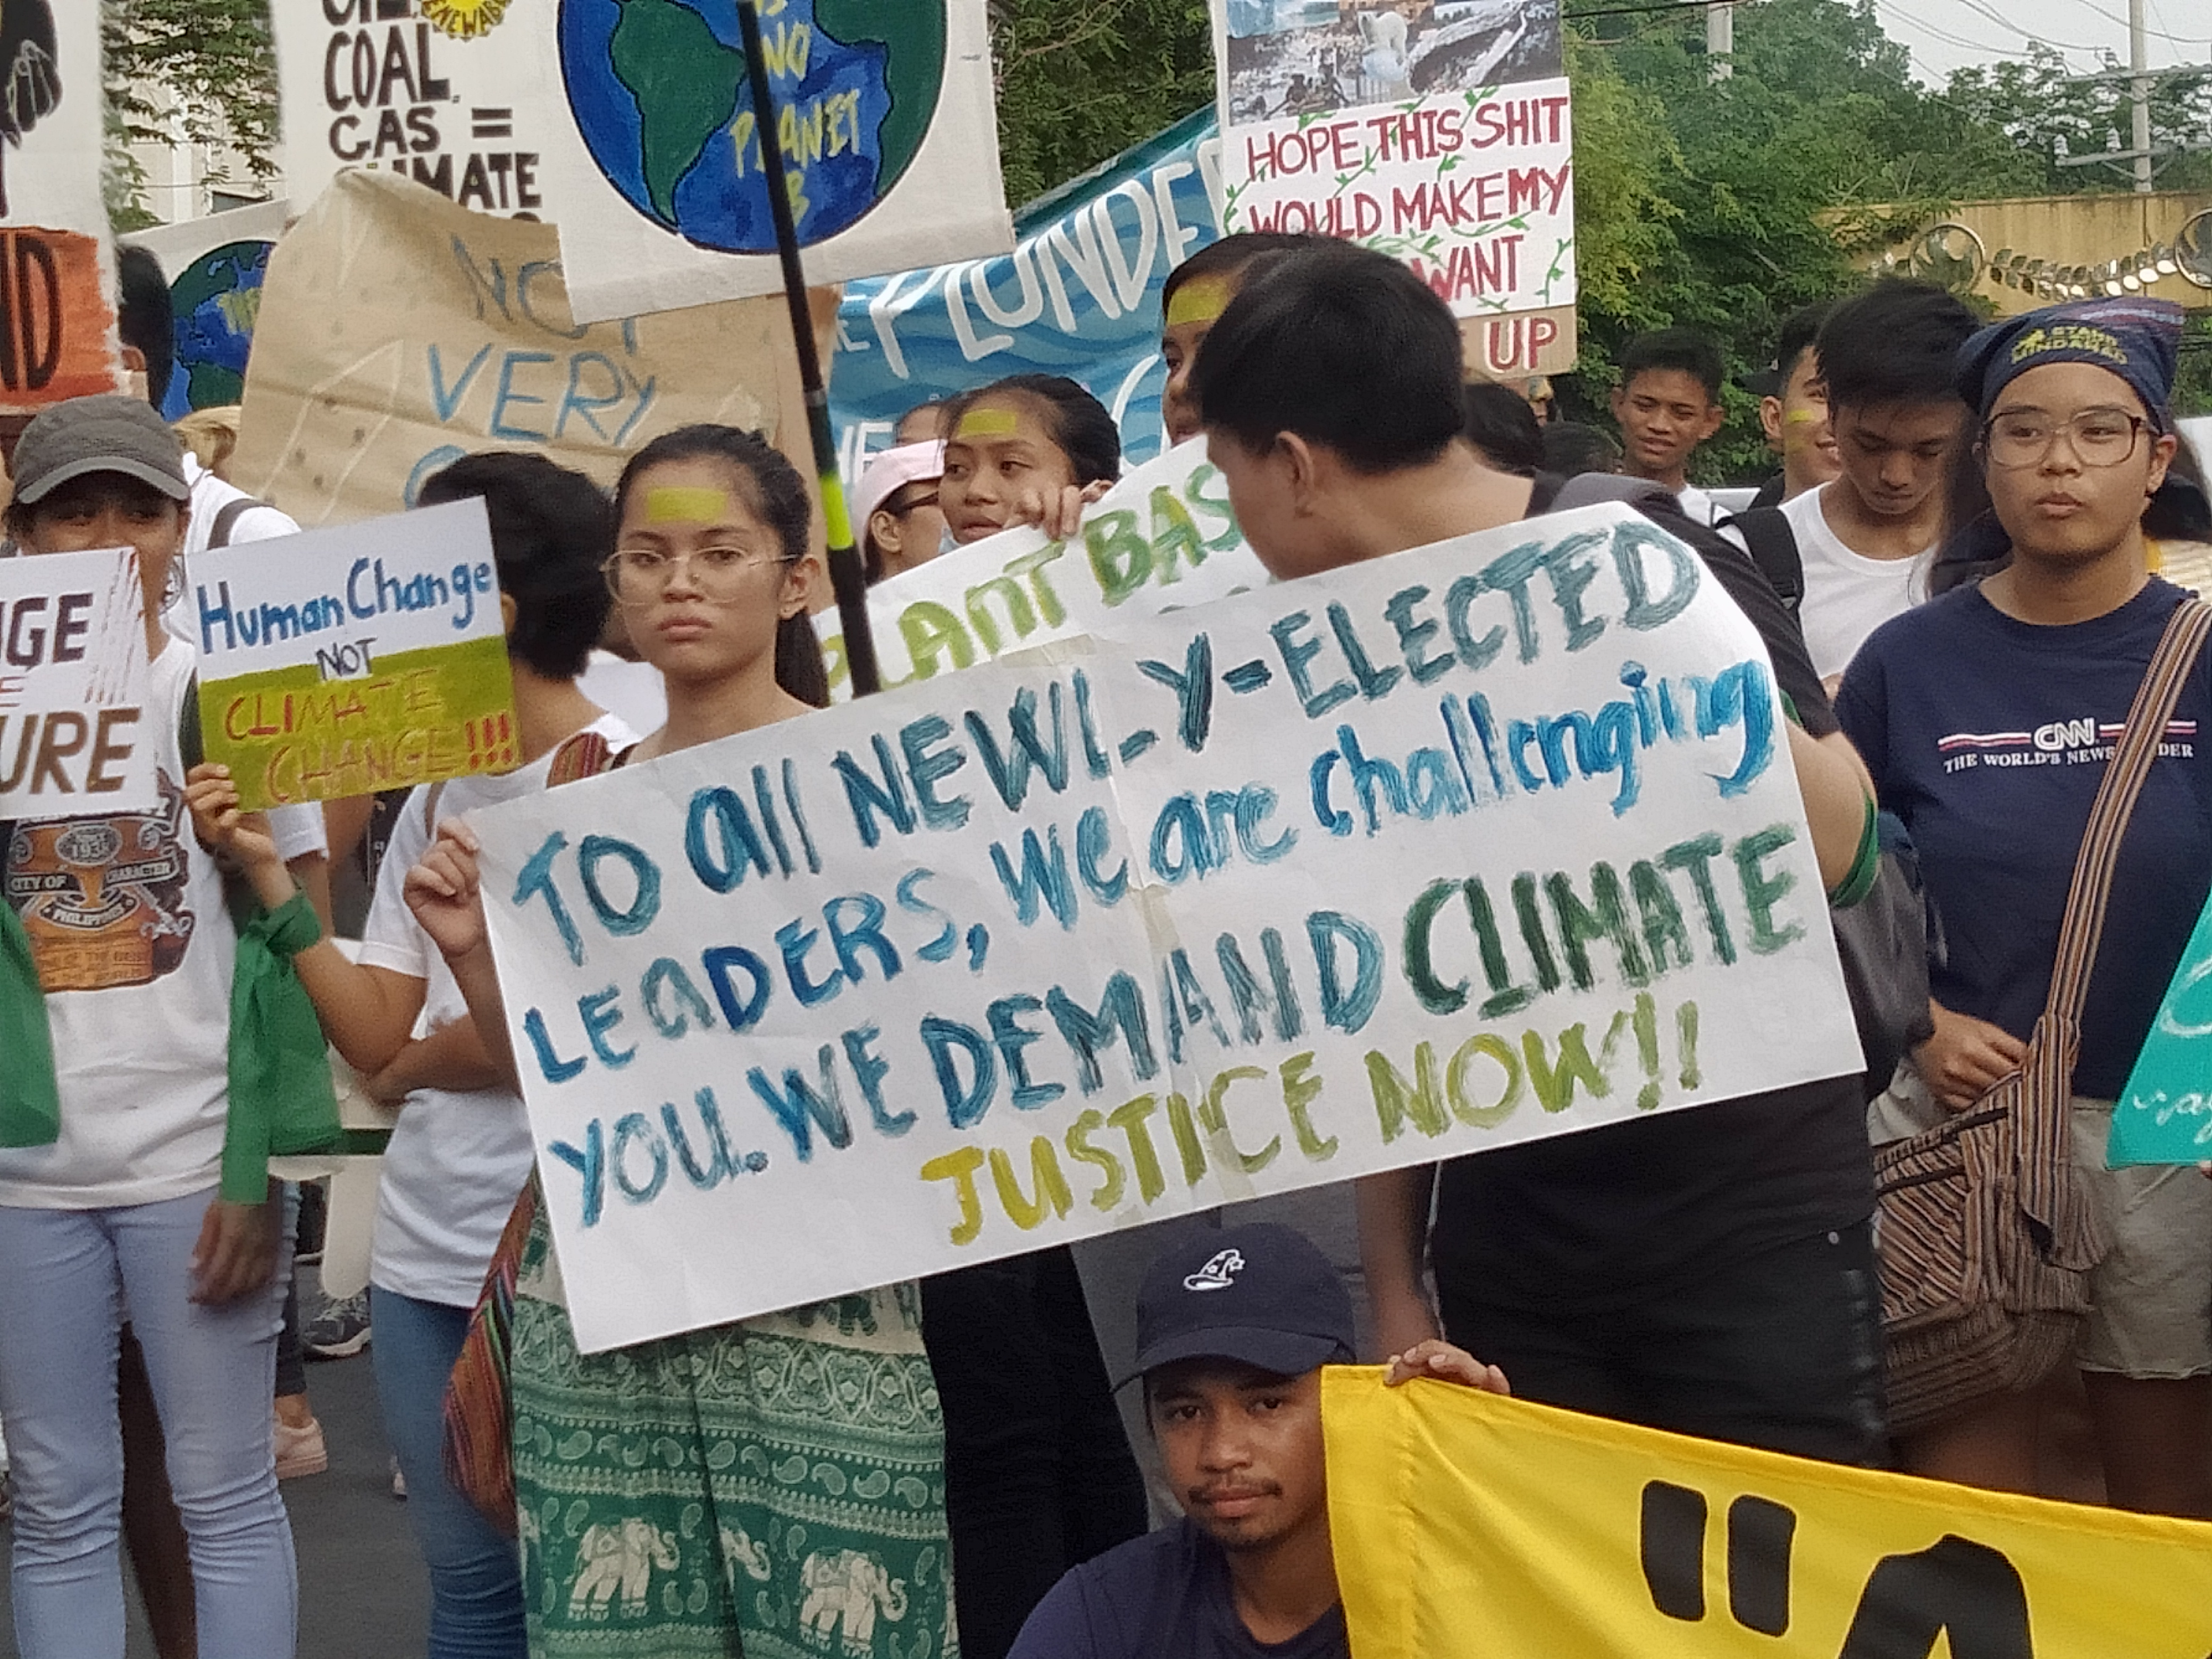 CHALLENGE TO POLITICIANS. Youth climate advocates urge newly elected leaders to push for an environmental agenda. Photo by Cherline Trajano/Rappler